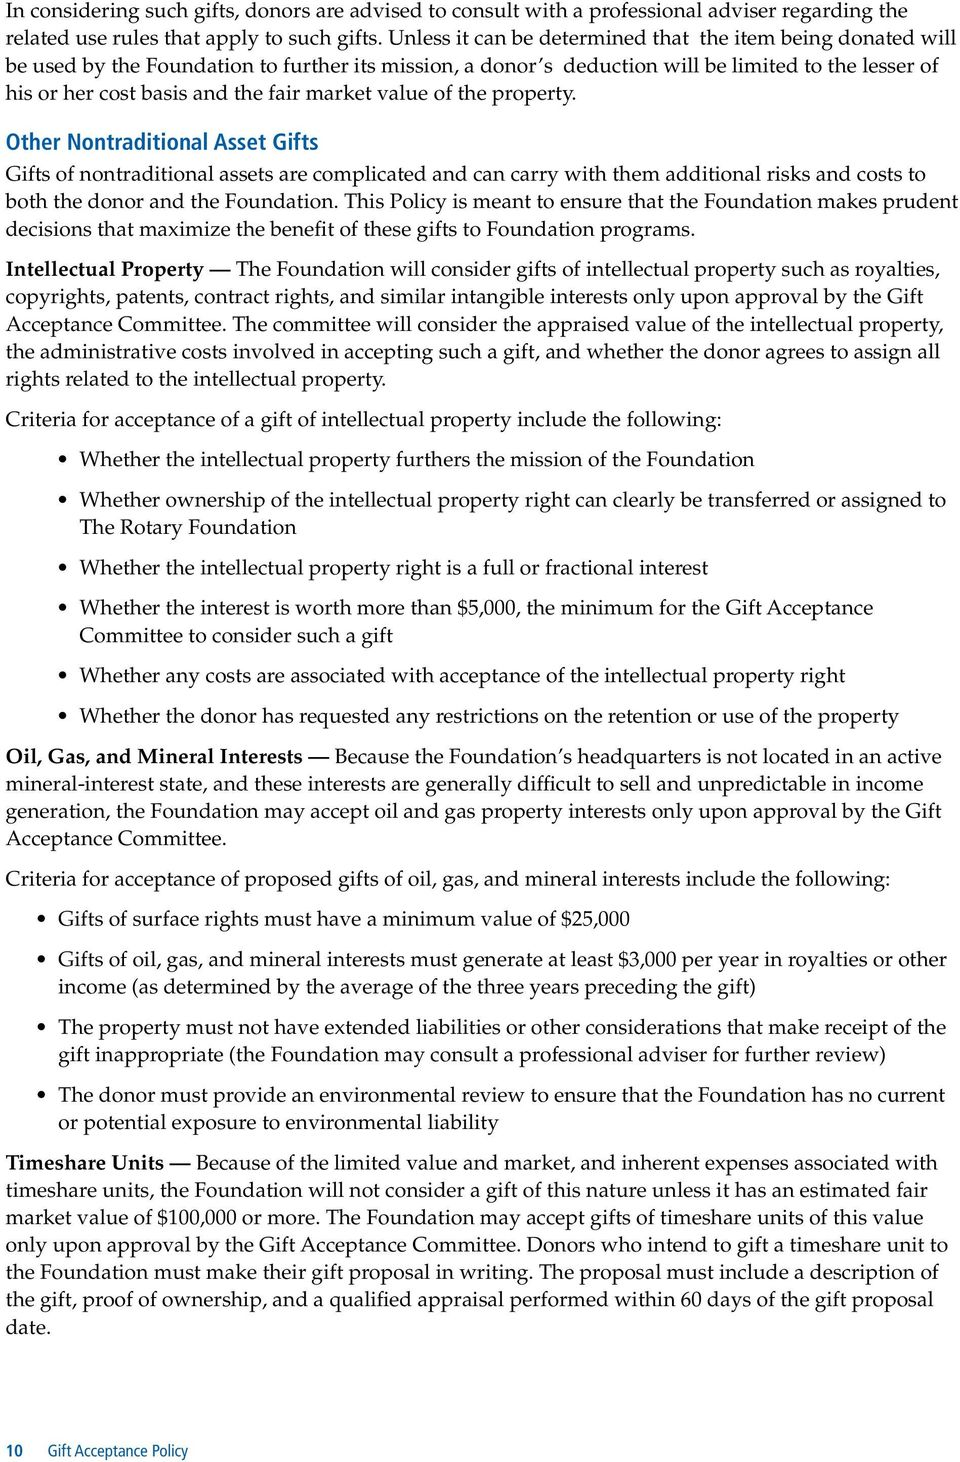 market value of the property. Other Nontraditional Asset Gifts Gifts of nontraditional assets are complicated and can carry with them additional risks and costs to both the donor and the Foundation.